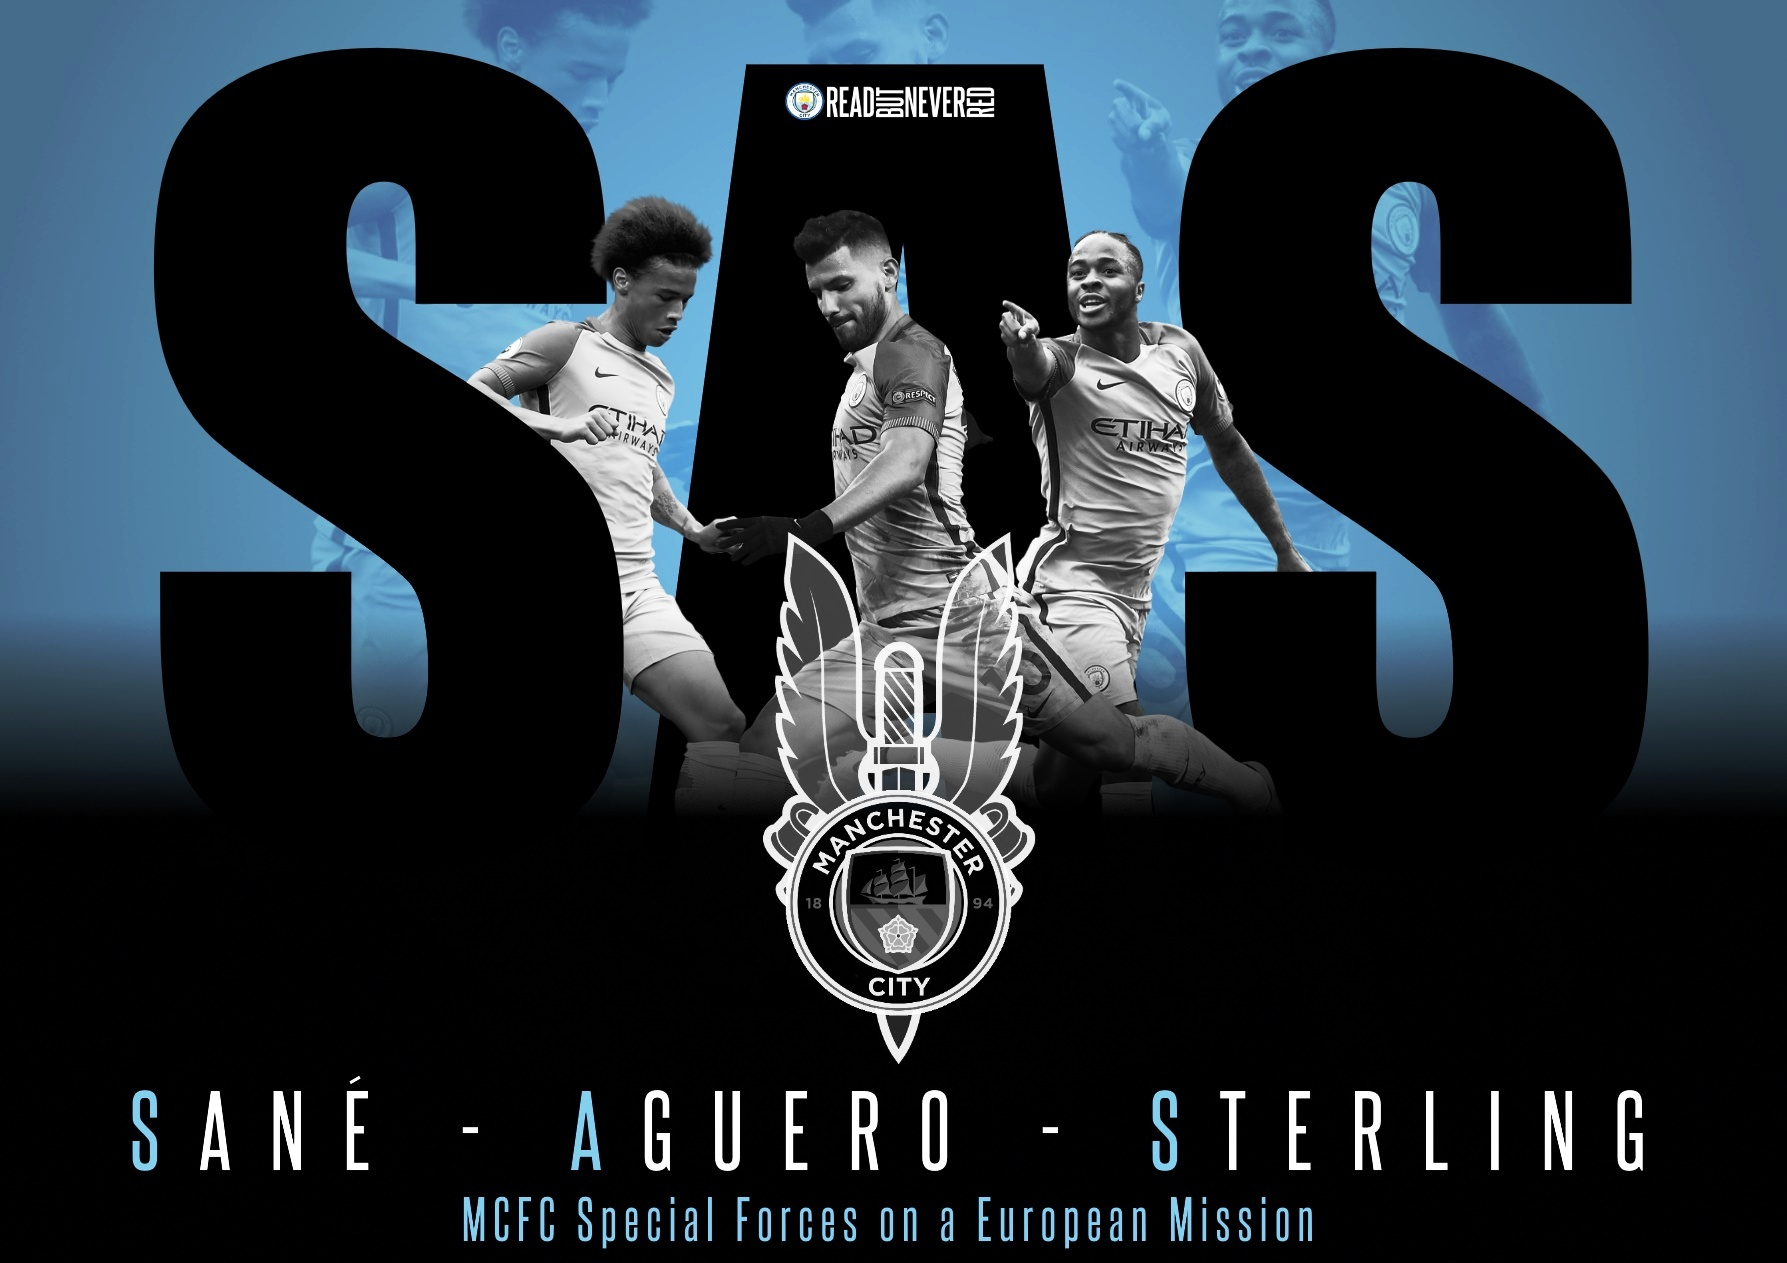 City's new look SAS strike force - Sane, Aguero & Sterling. Bespoke image courtesy of Stiz from our BlueRoom sponsors.